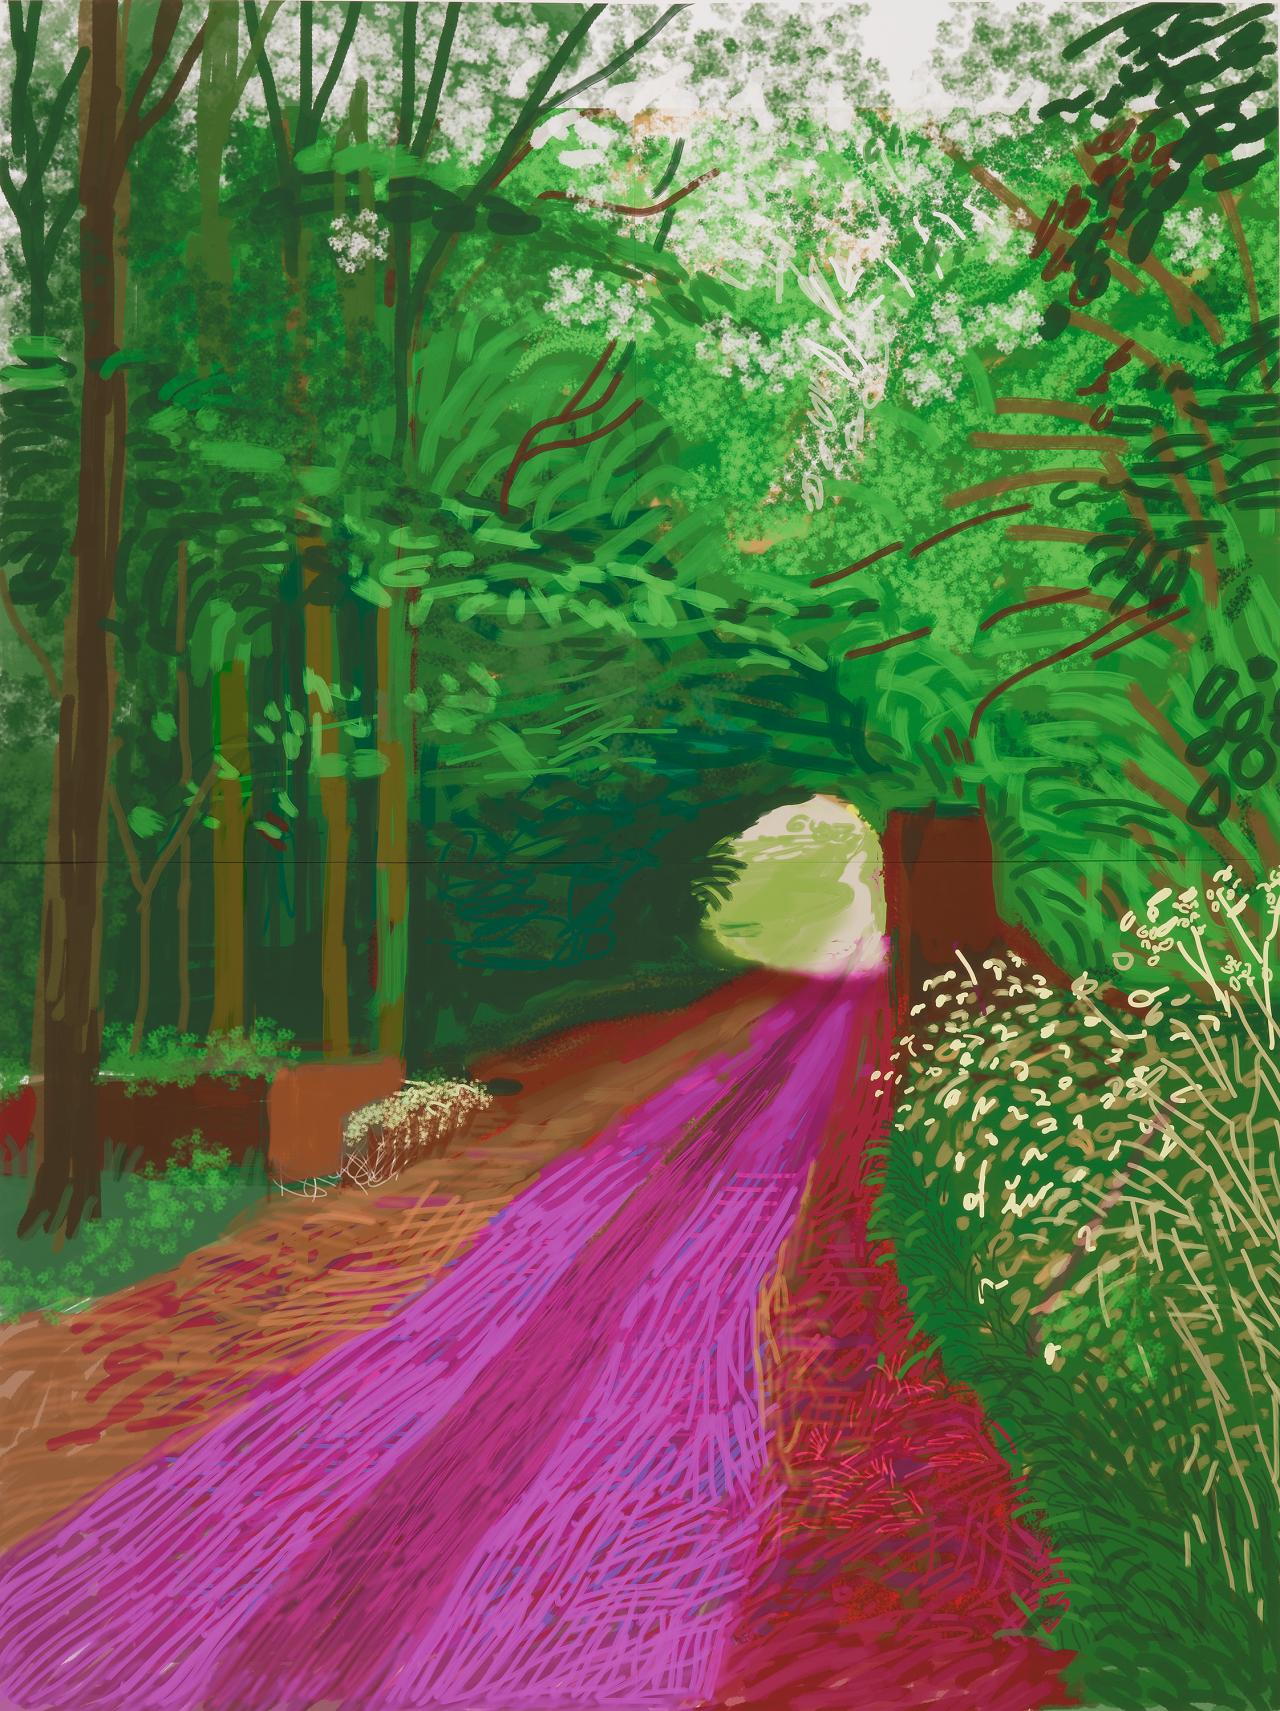 David Hockney<br/> English 1937–<br/> The arrival of spring in Woldgate, East Yorkshire in 2011 (twenty eleven) – 31 May, No. 1 (900)<br/>  iPad drawing printed on 6 sheets of paper mounted on Dibond<br/> 290.8 x 218.4 cm (overall)<br/> Collection of the artist<br/> © David Hockney<br/> Photo Credit: Richard Schmidt